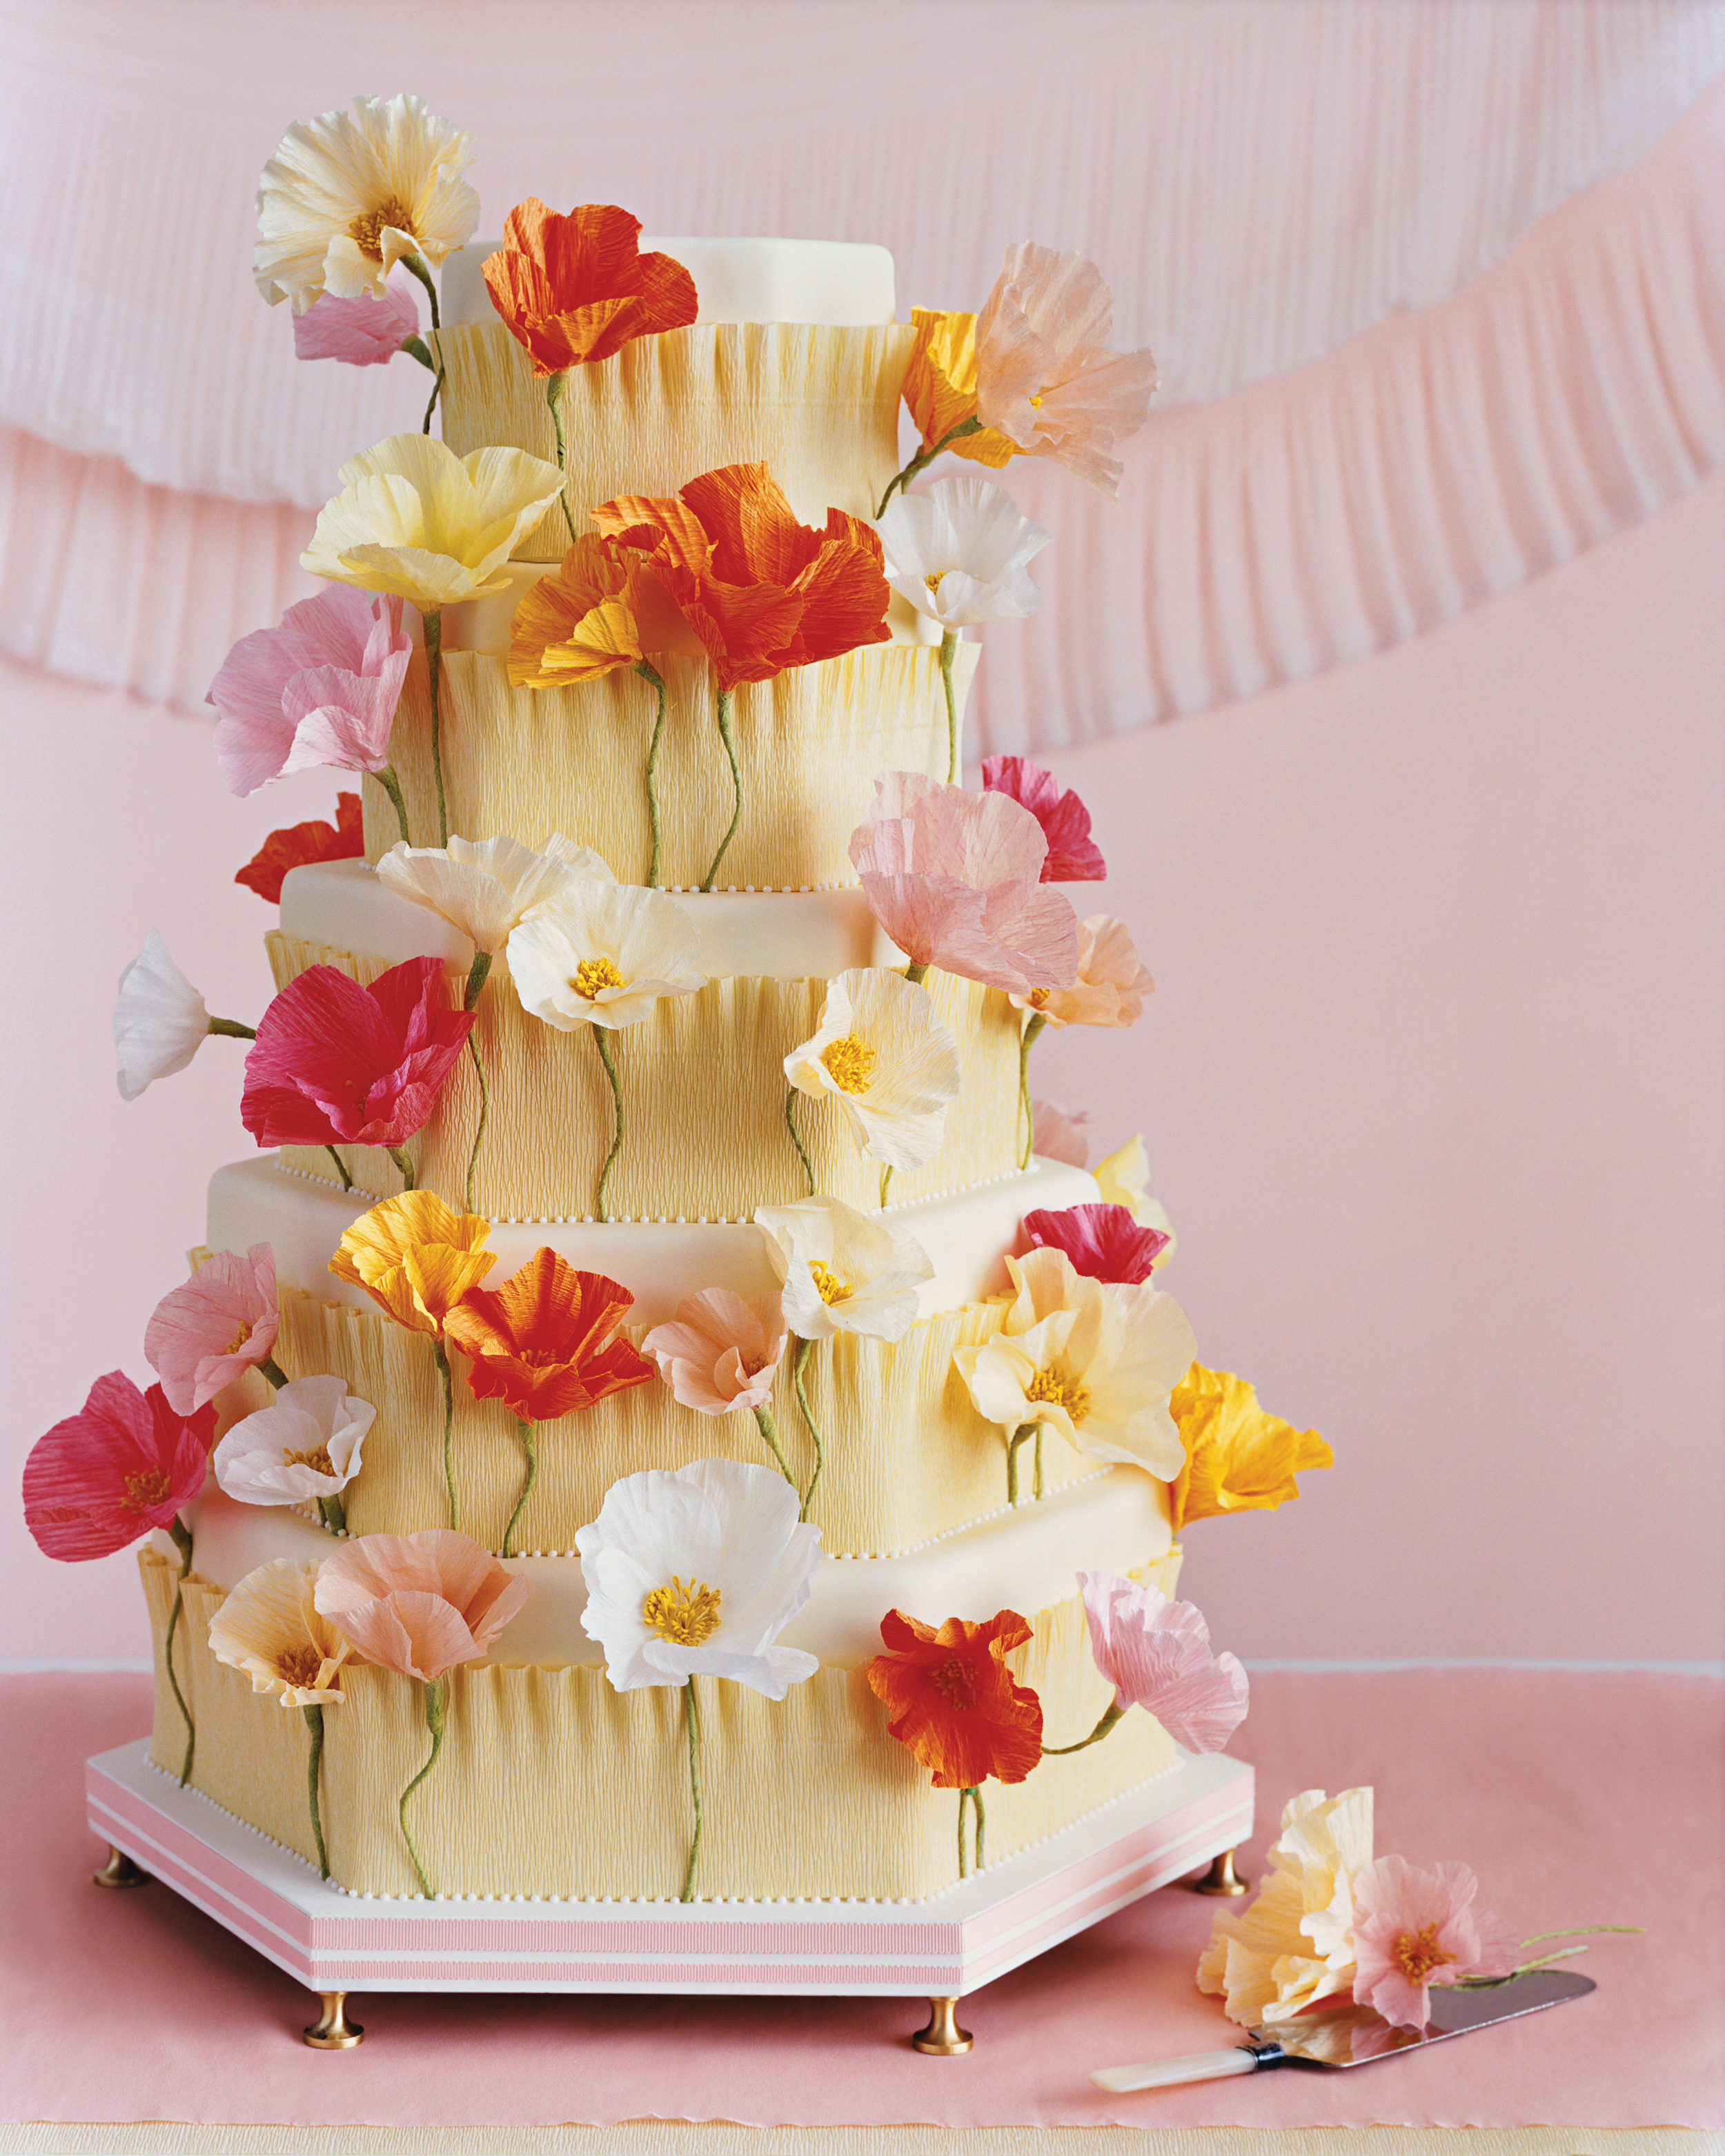 Crepe-Paper Poppies Cake